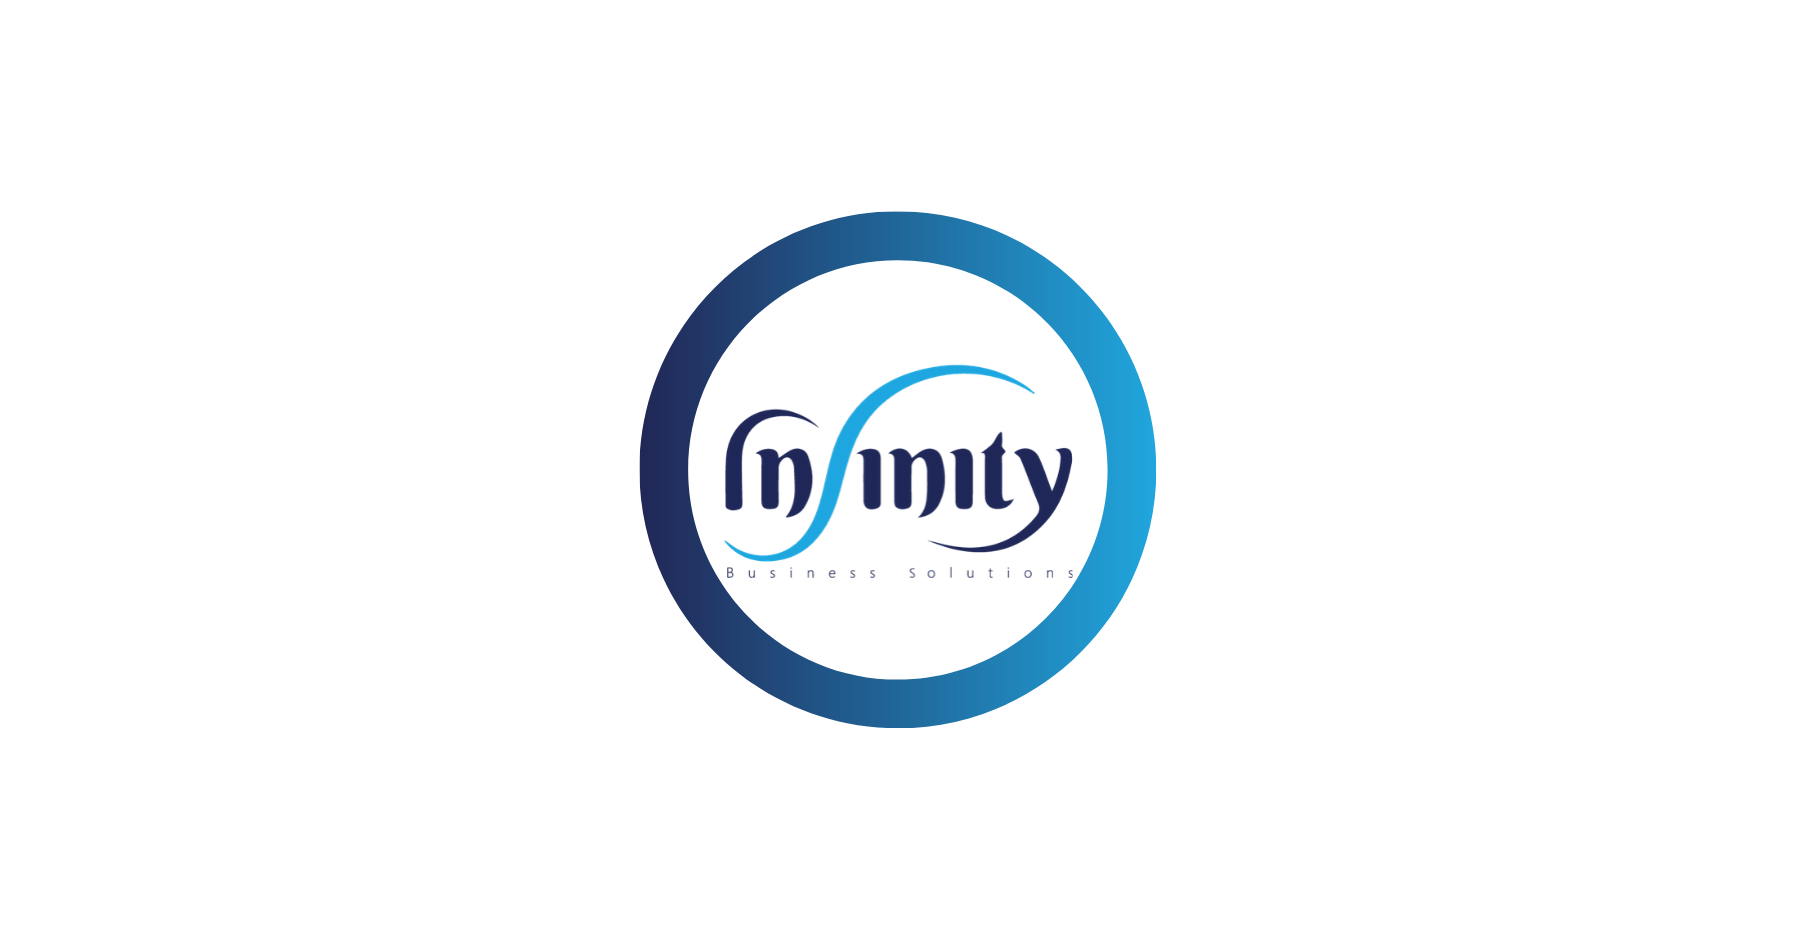 صورة Job: DevOps Engineer at Infinity Business Solutions in Cairo, Egypt